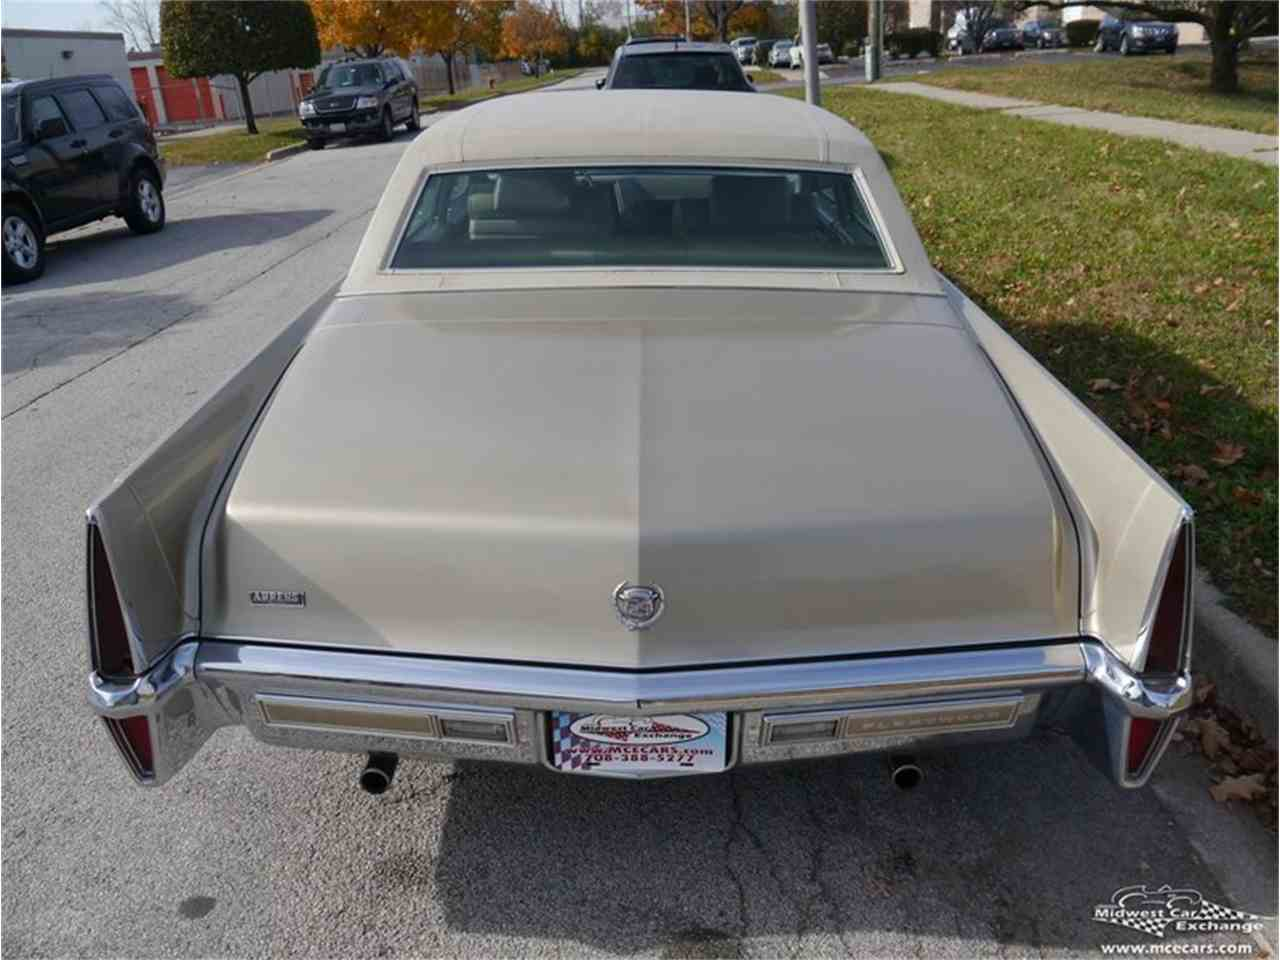 Large Picture of Classic '70 Cadillac Fleetwood Brougham Offered by Midwest Car Exchange - M9KI